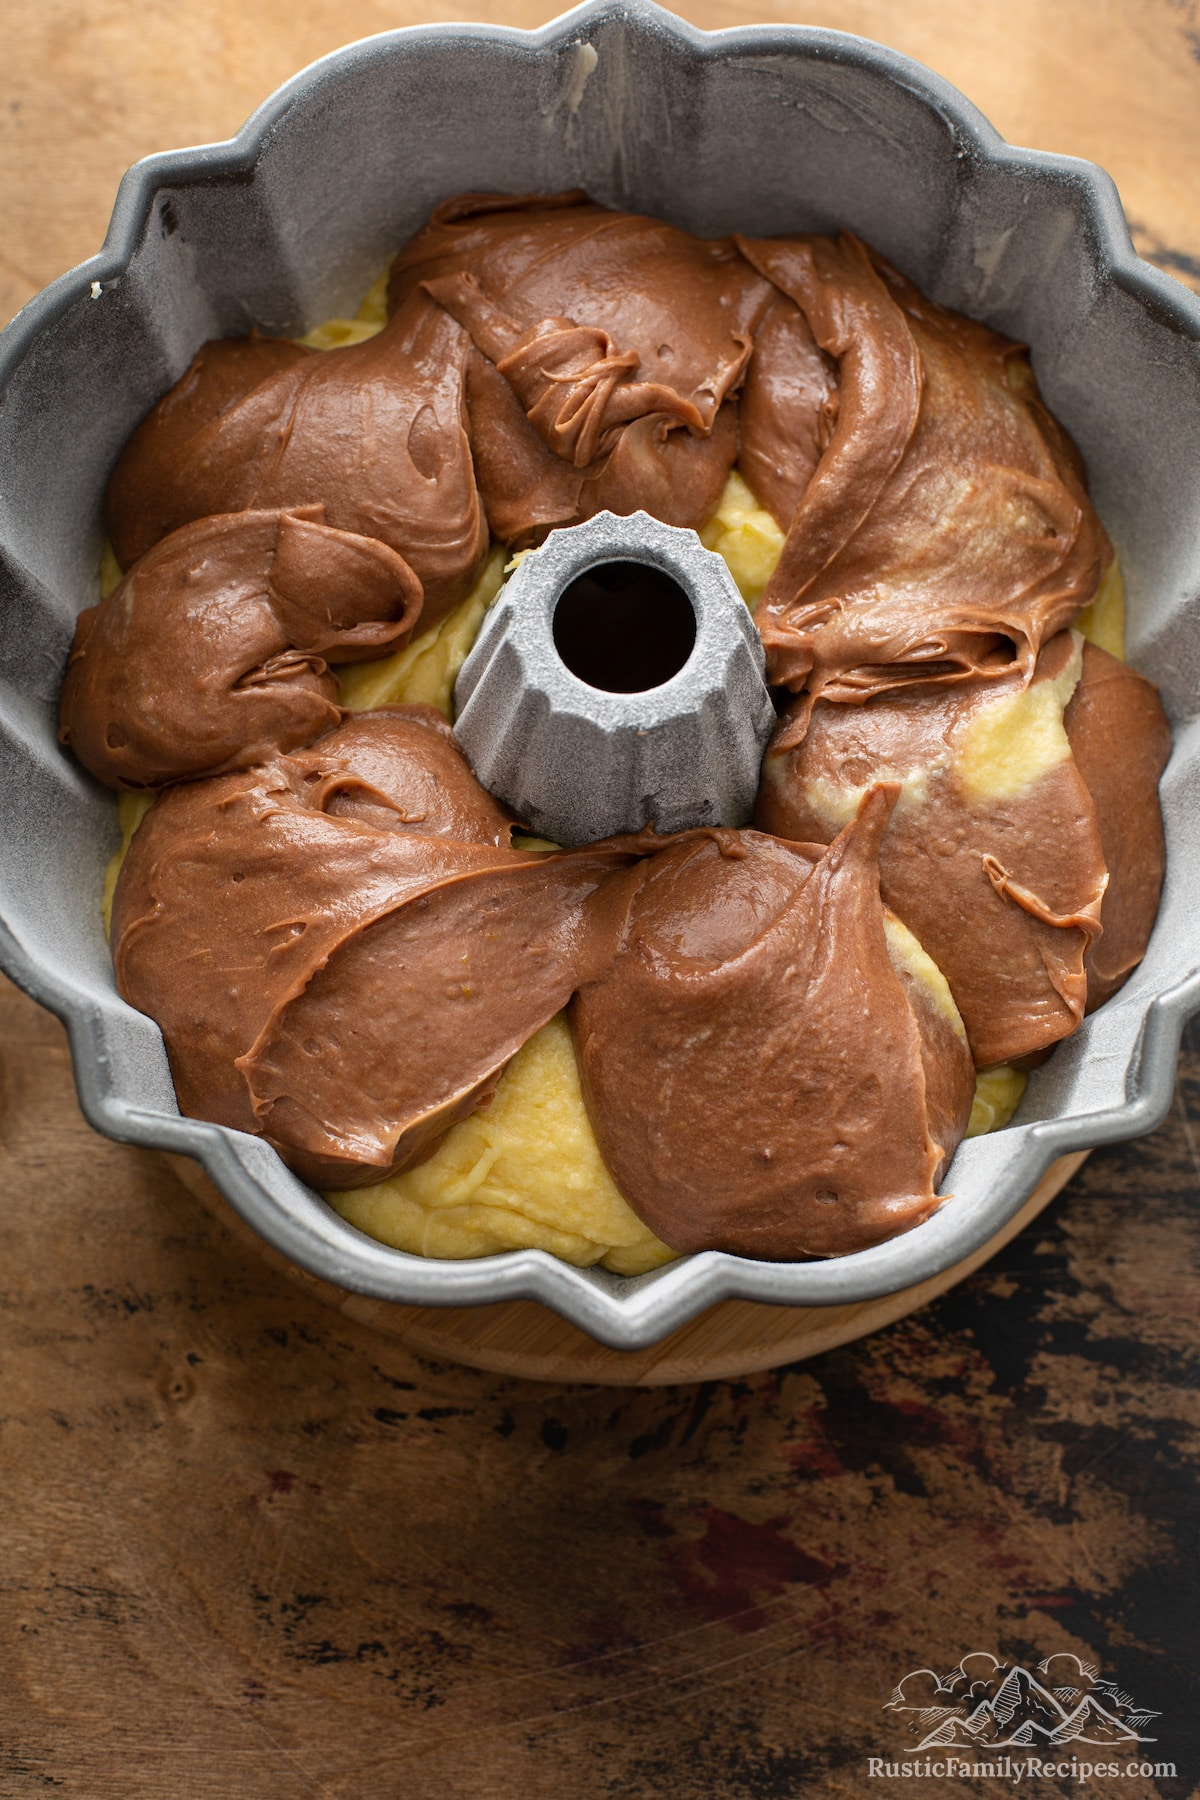 Chocolate and vanilla batter in a bundt pan.